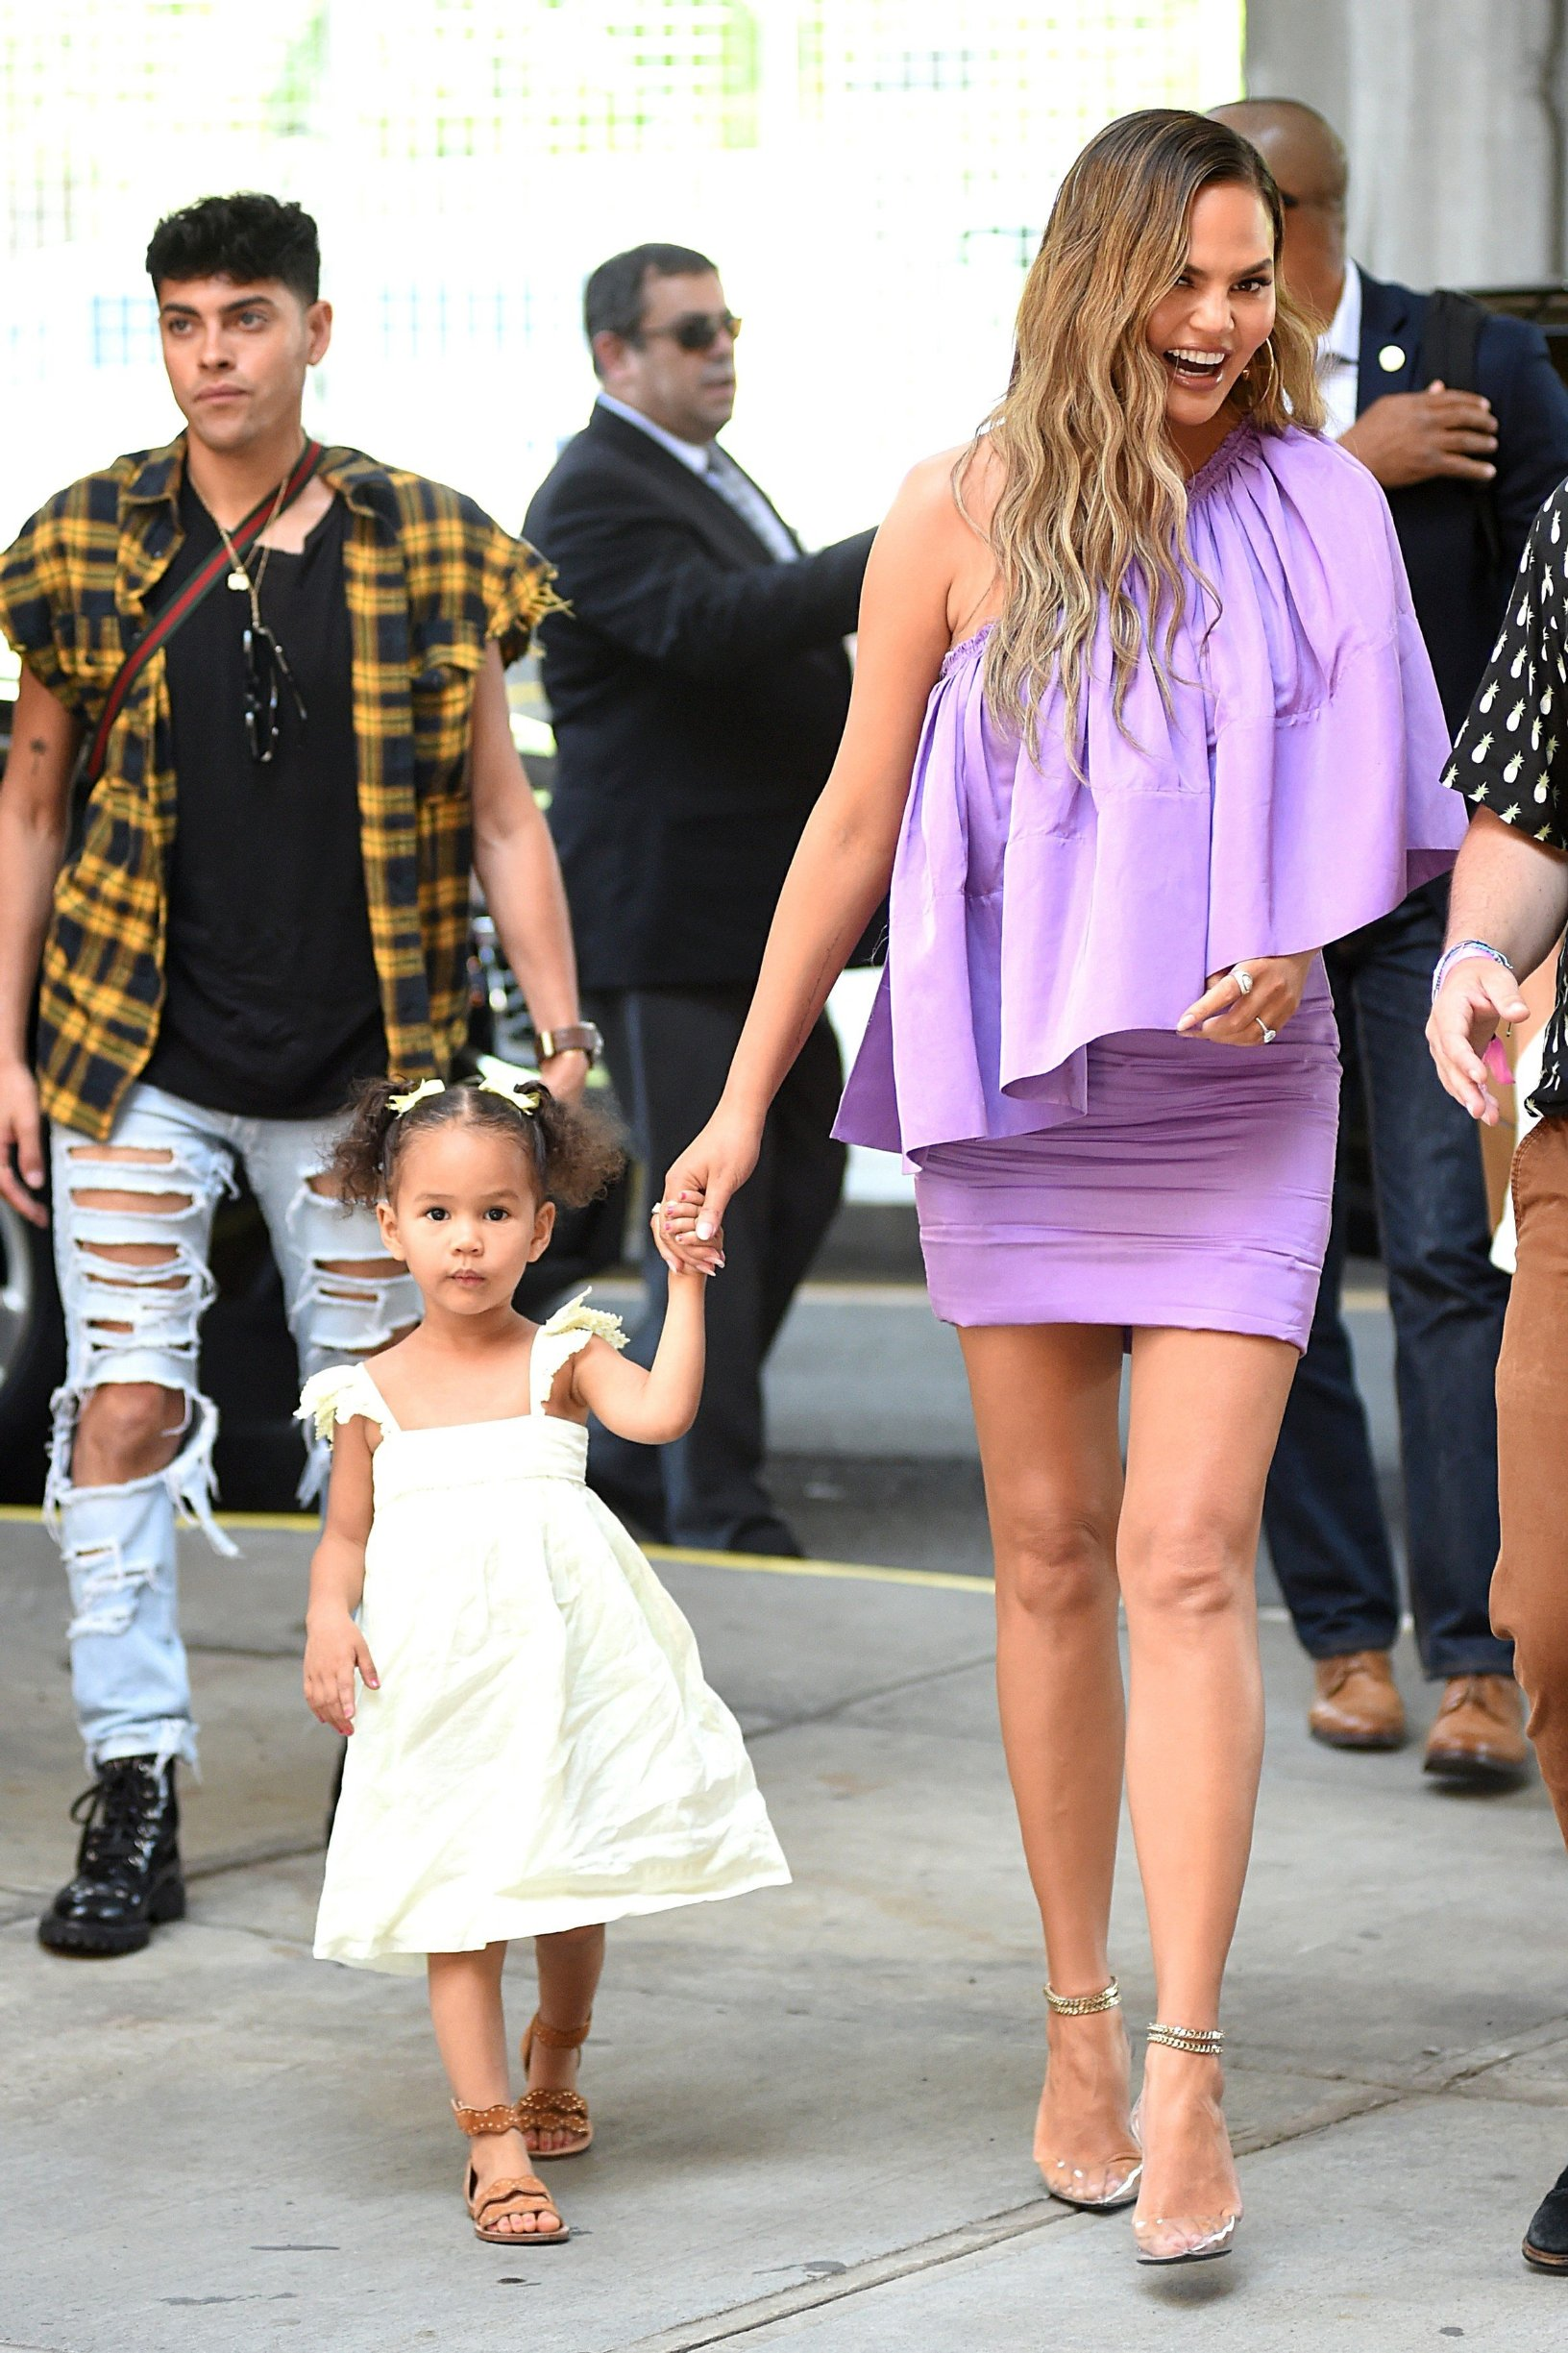 , New York, NY - 20190623 Chrissy Teigen walking around with her daughter, Luna Simone Stephens.   -PICTURED: Luna Simone Stephens, Chrissy Teigen -, Image: 450827218, License: Rights-managed, Restrictions: , Model Release: no, Credit line: Profimedia, INSTAR Images